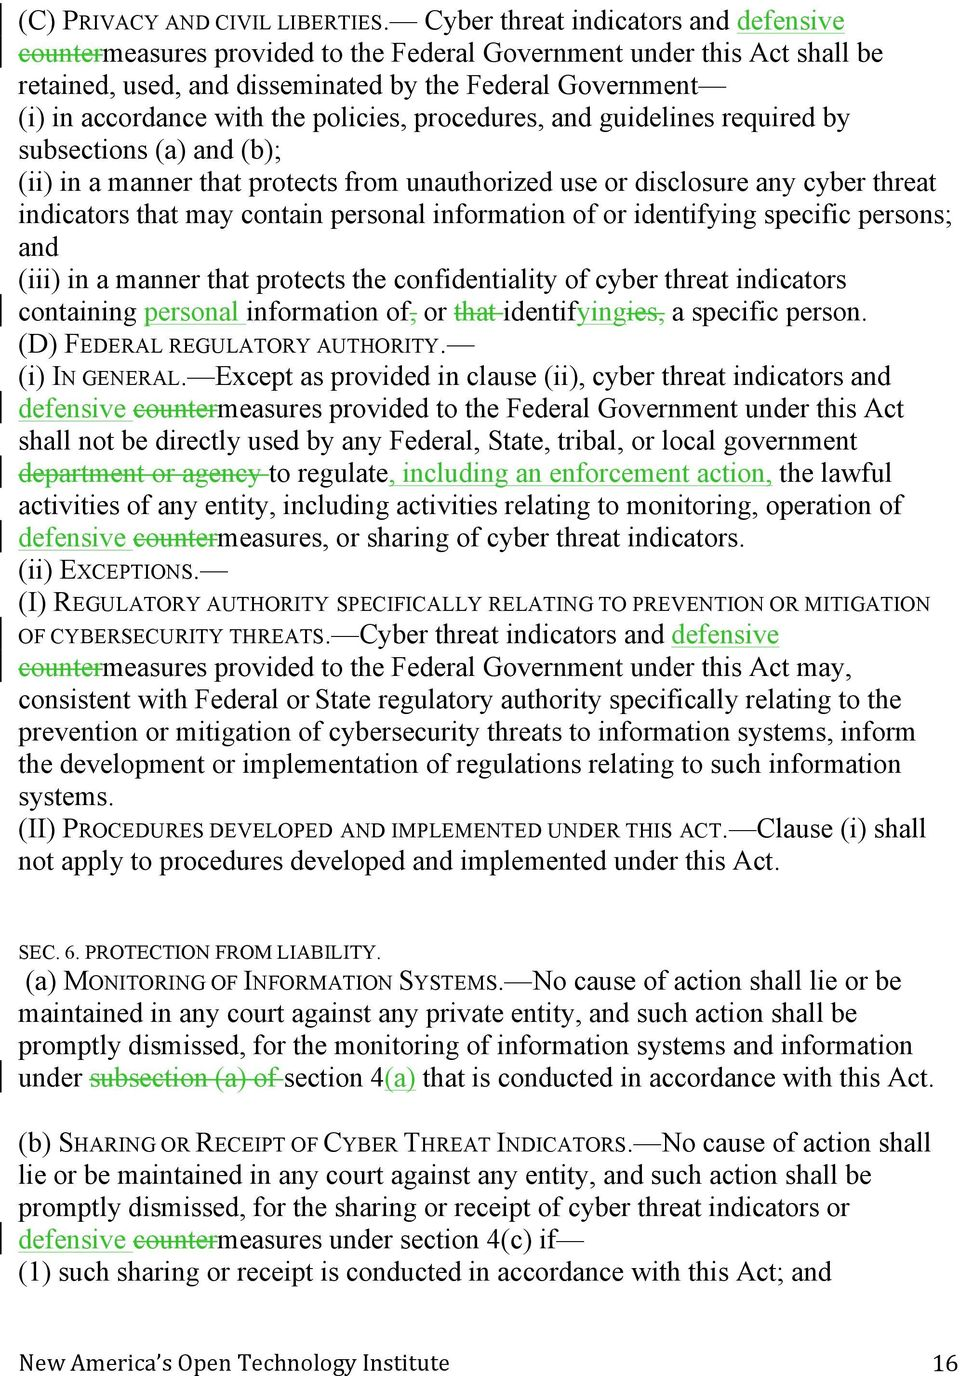 policies, procedures, and guidelines required by subsections (a) and (b); (ii) in a manner that protects from unauthorized use or disclosure any cyber threat indicators that may contain personal